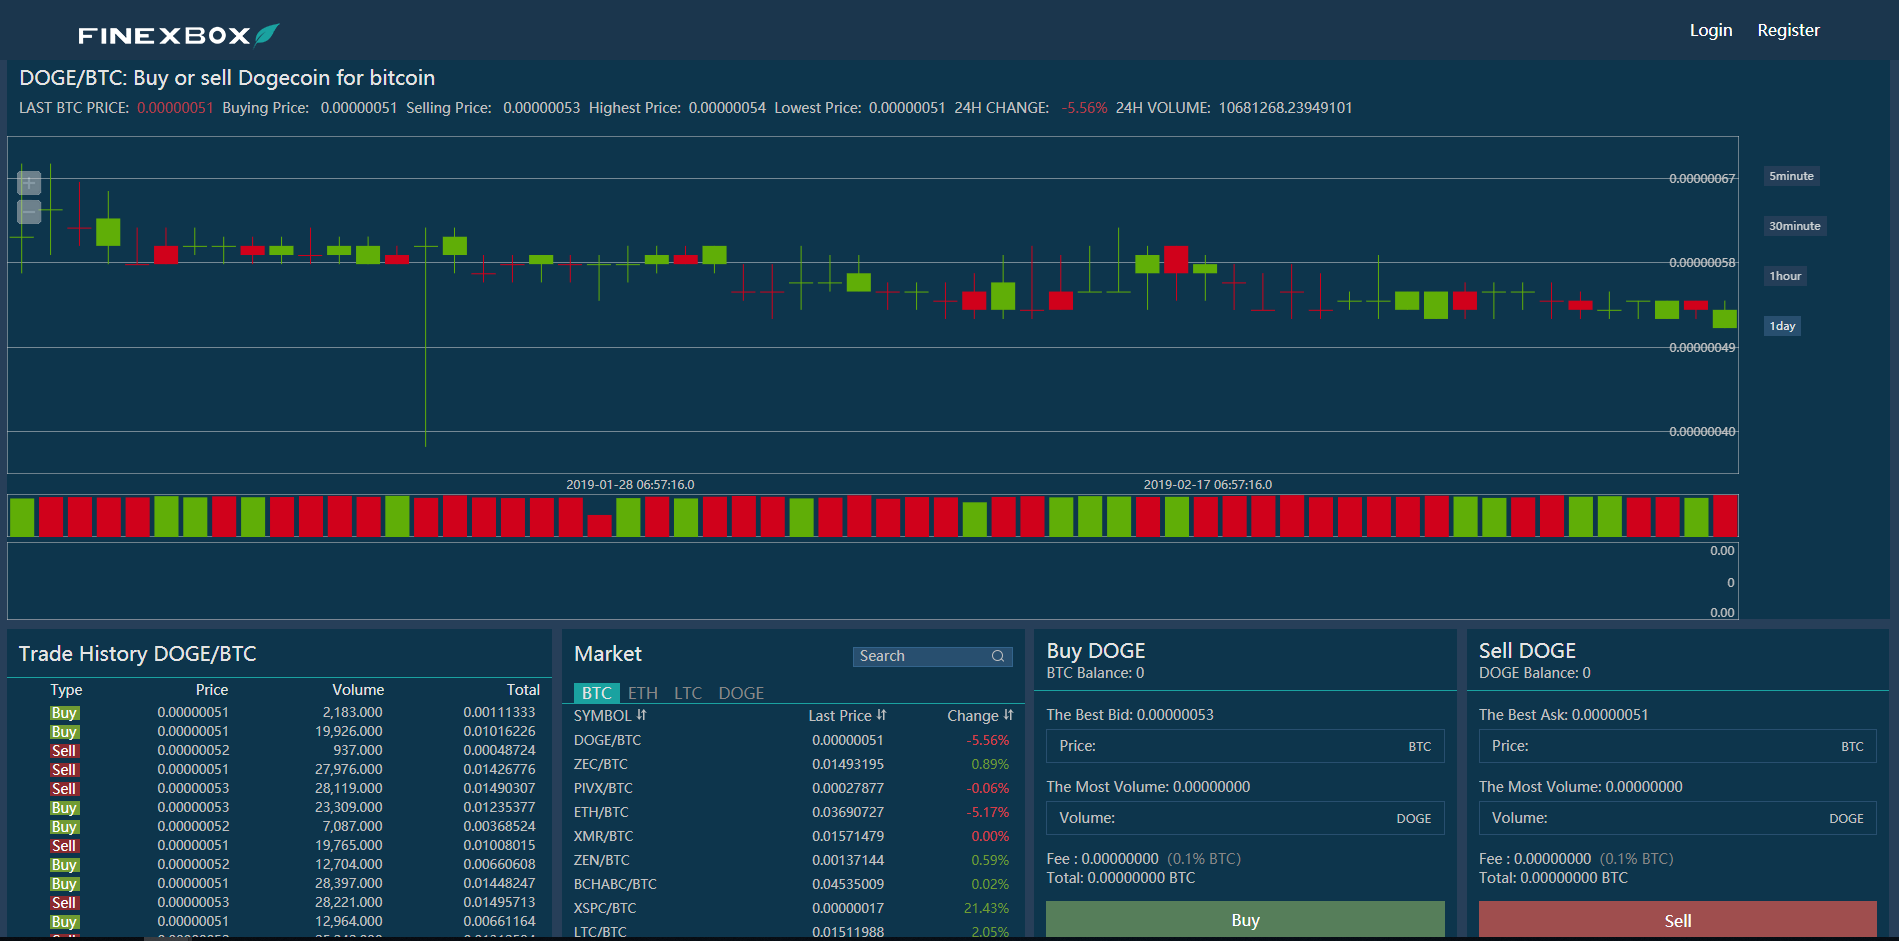 FinexBox Trading View